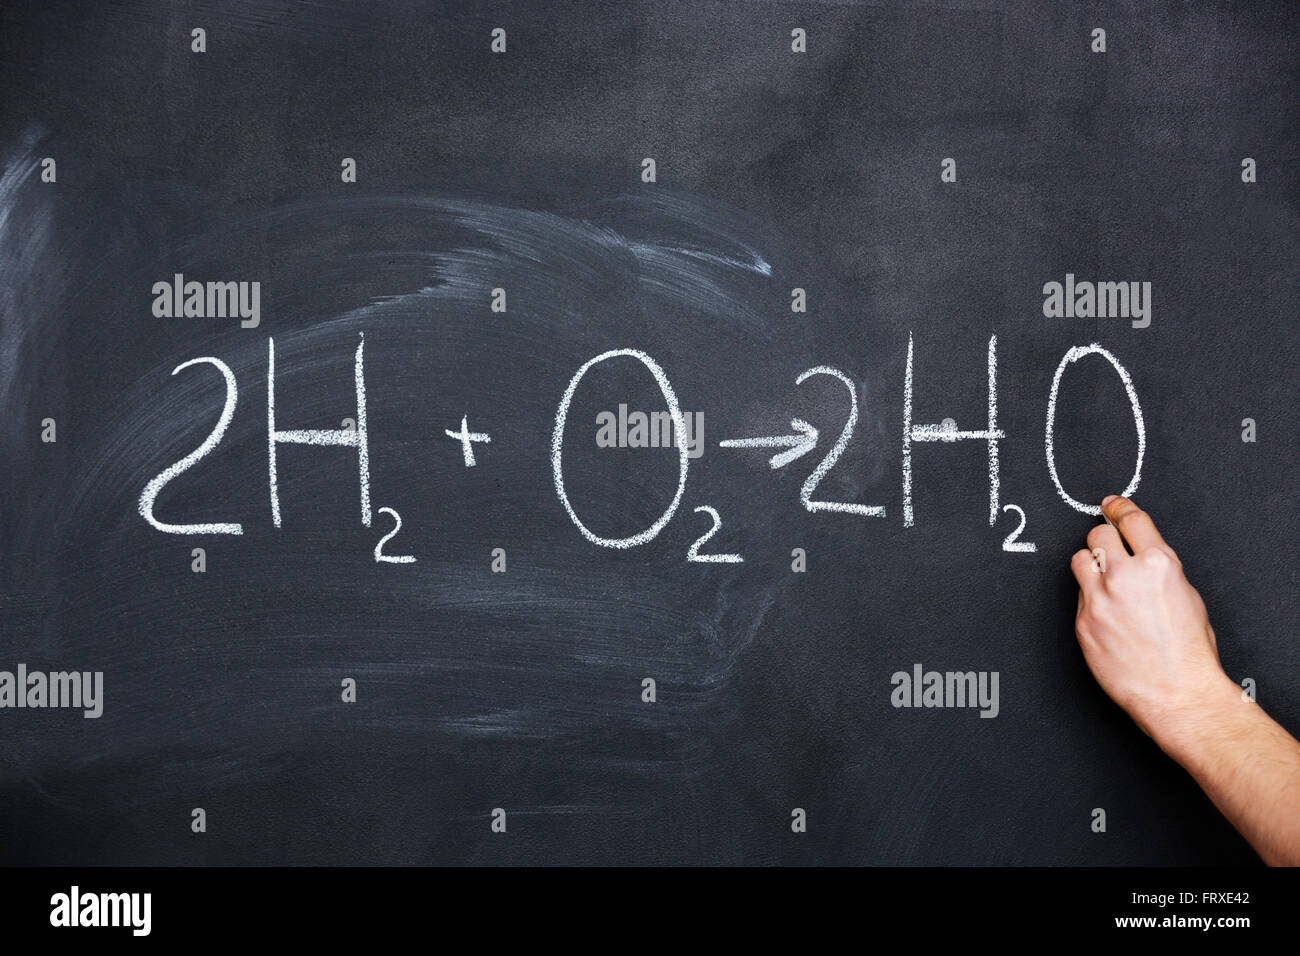 H2o chemical symbol stock photos h2o chemical symbol stock images hand writing chemical formula on blackboard with chalk buycottarizona Choice Image